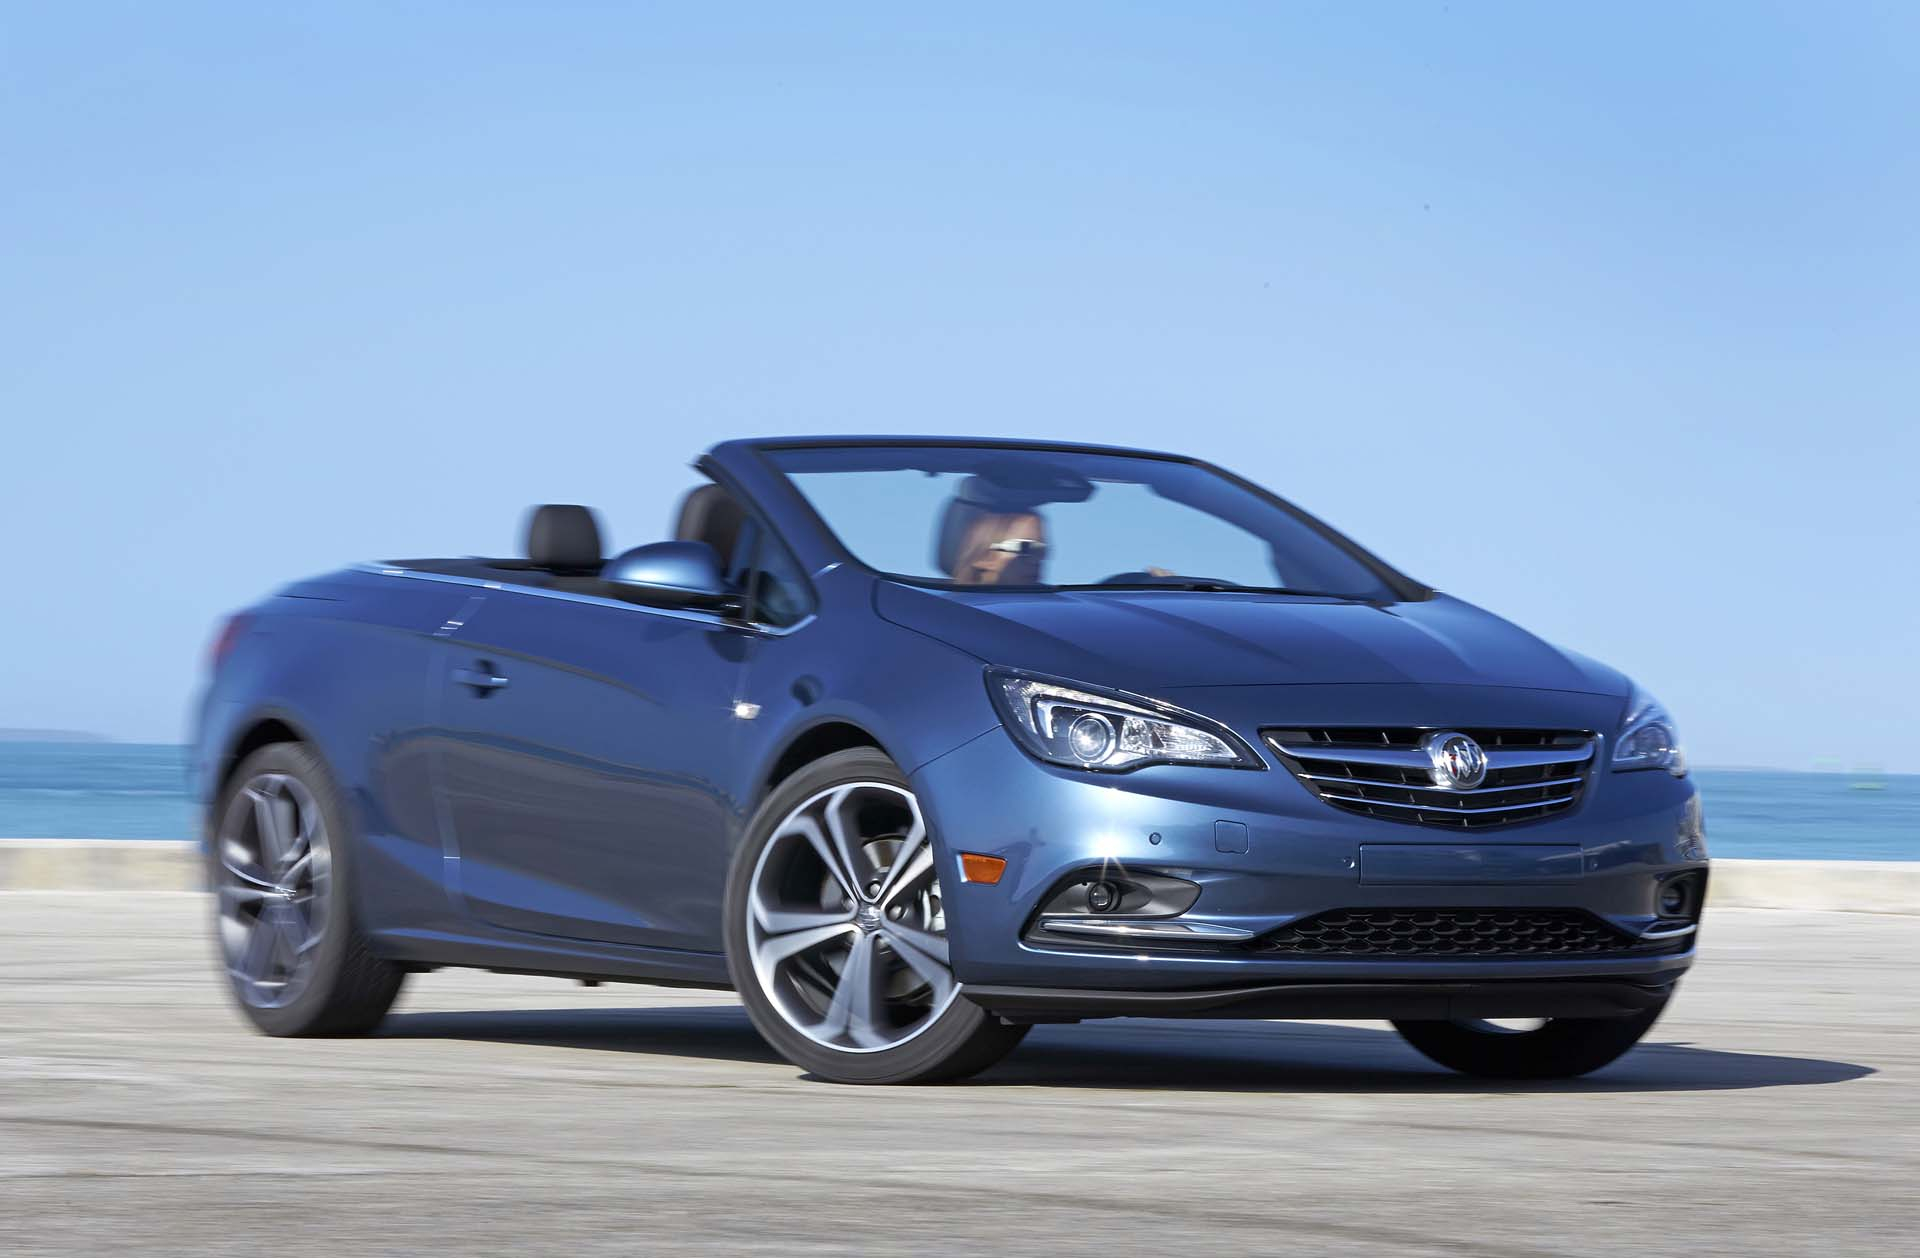 Buick Cascada May Bow Out After 2019 2022 Buick Cascada Pictures, Remote Start, Release